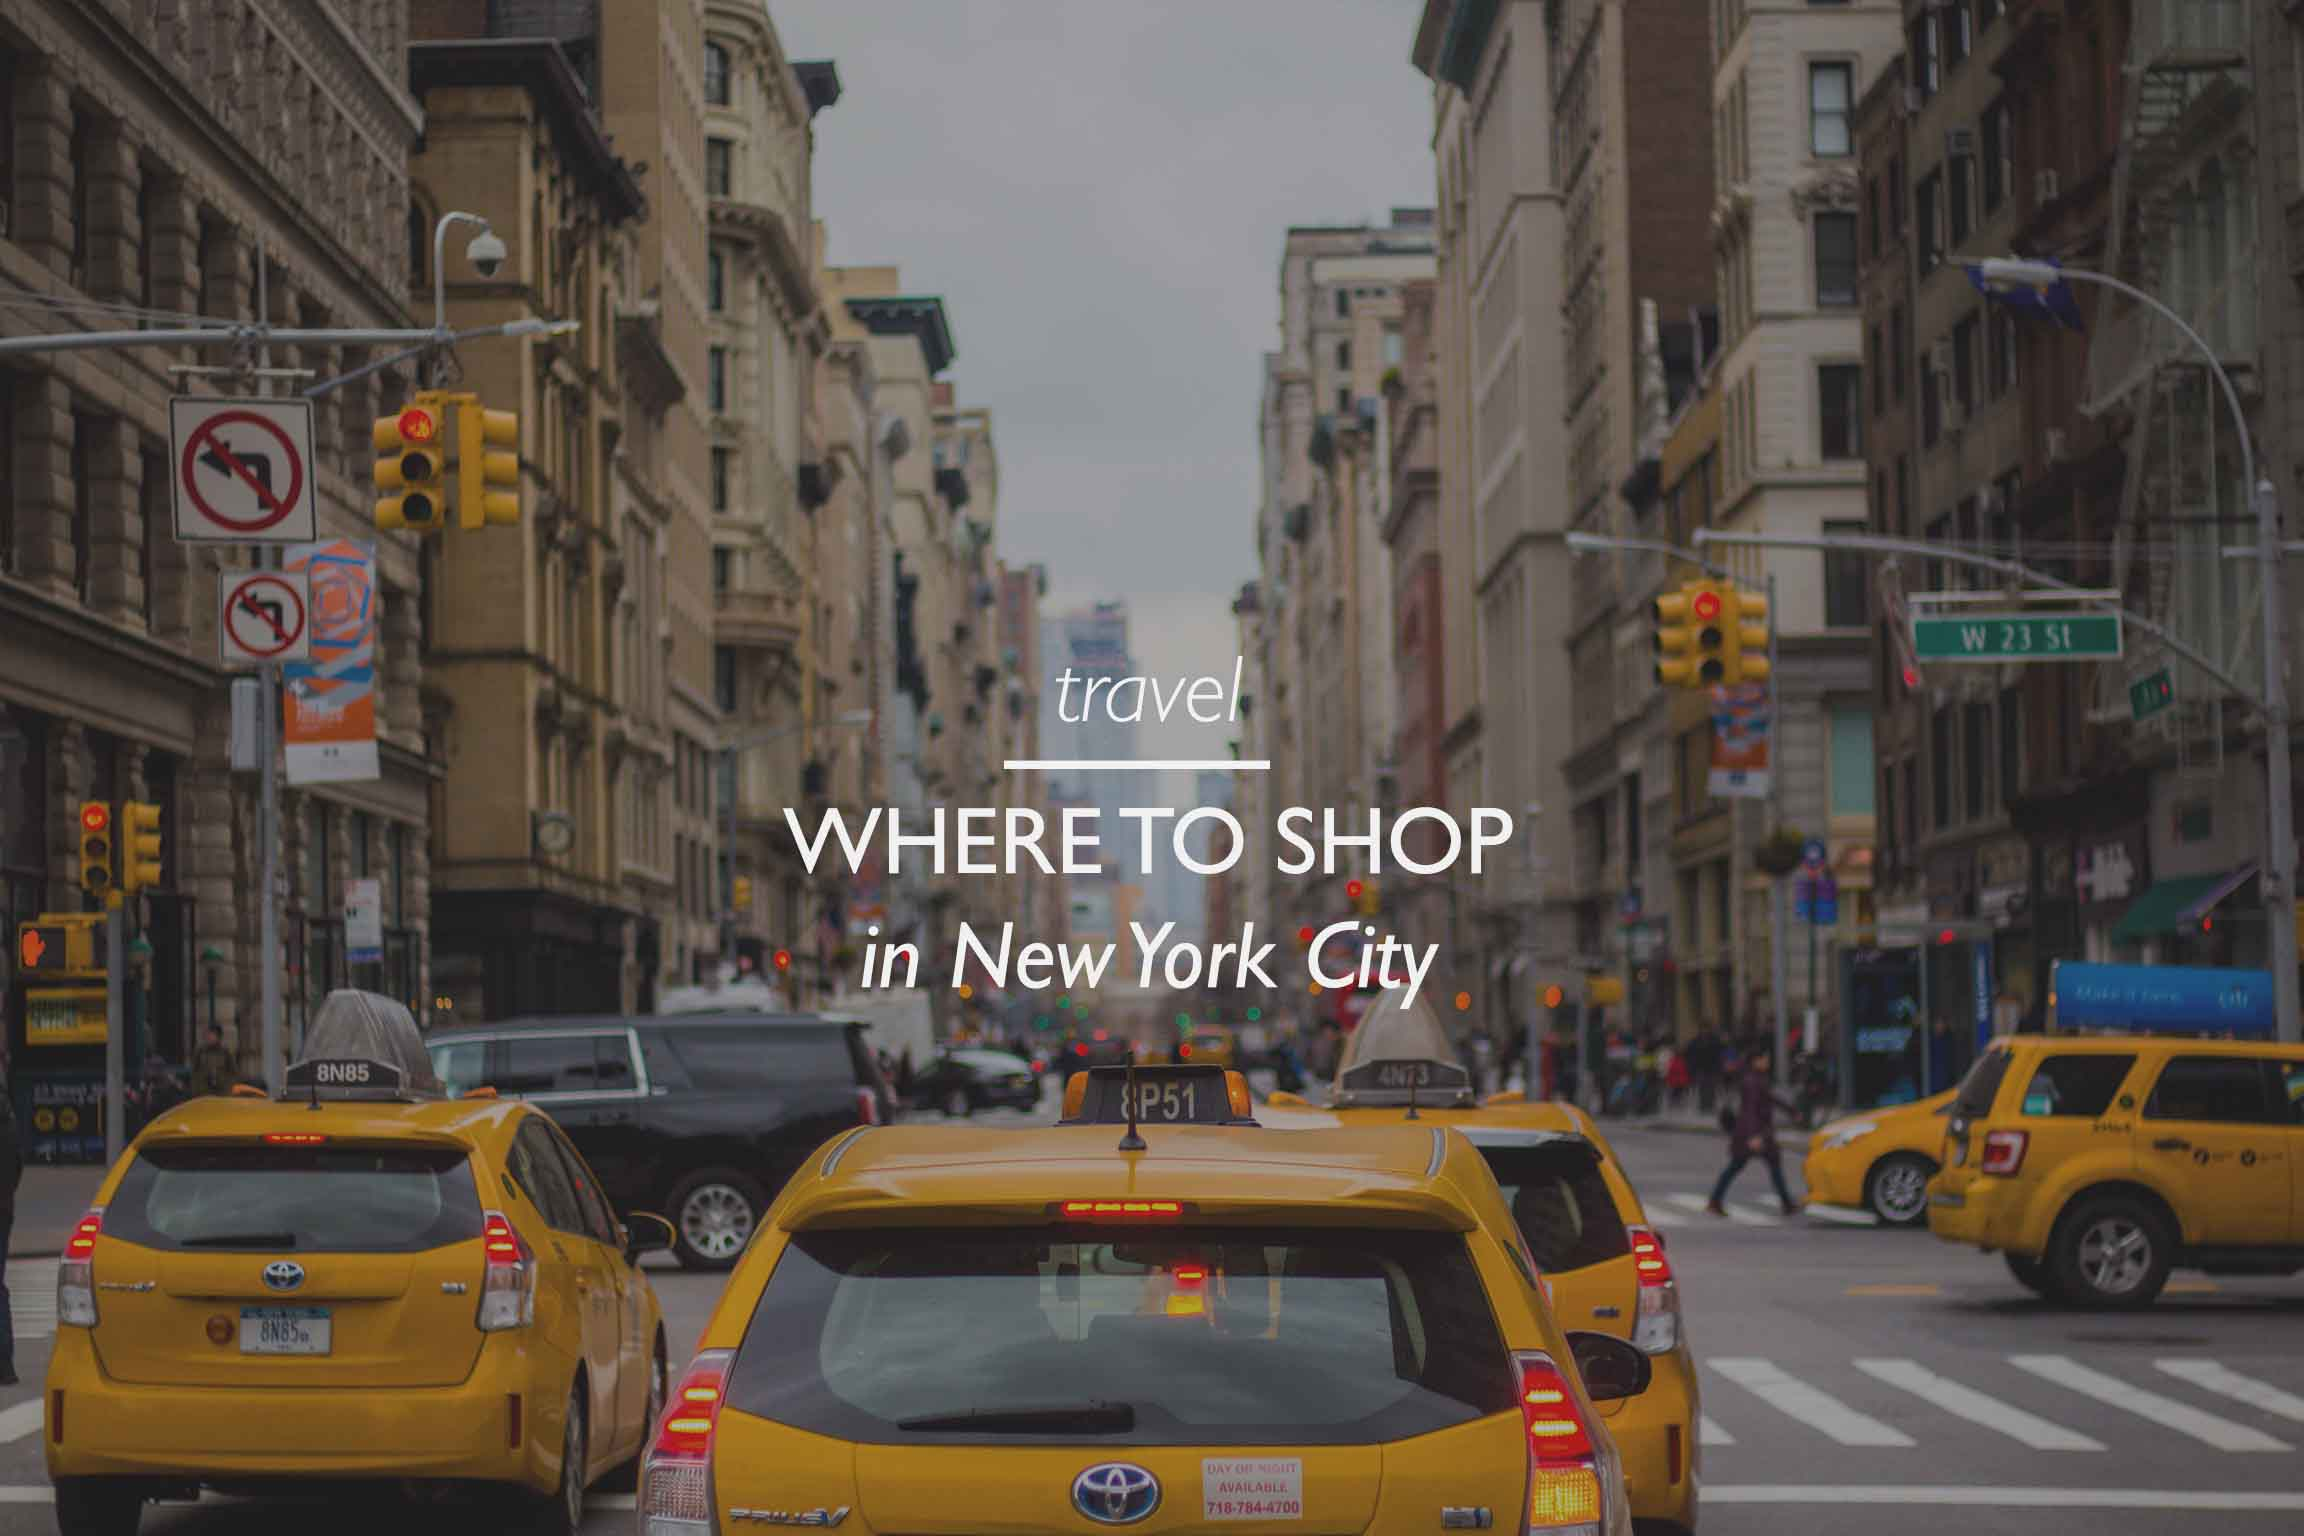 Where to Shop in New York City